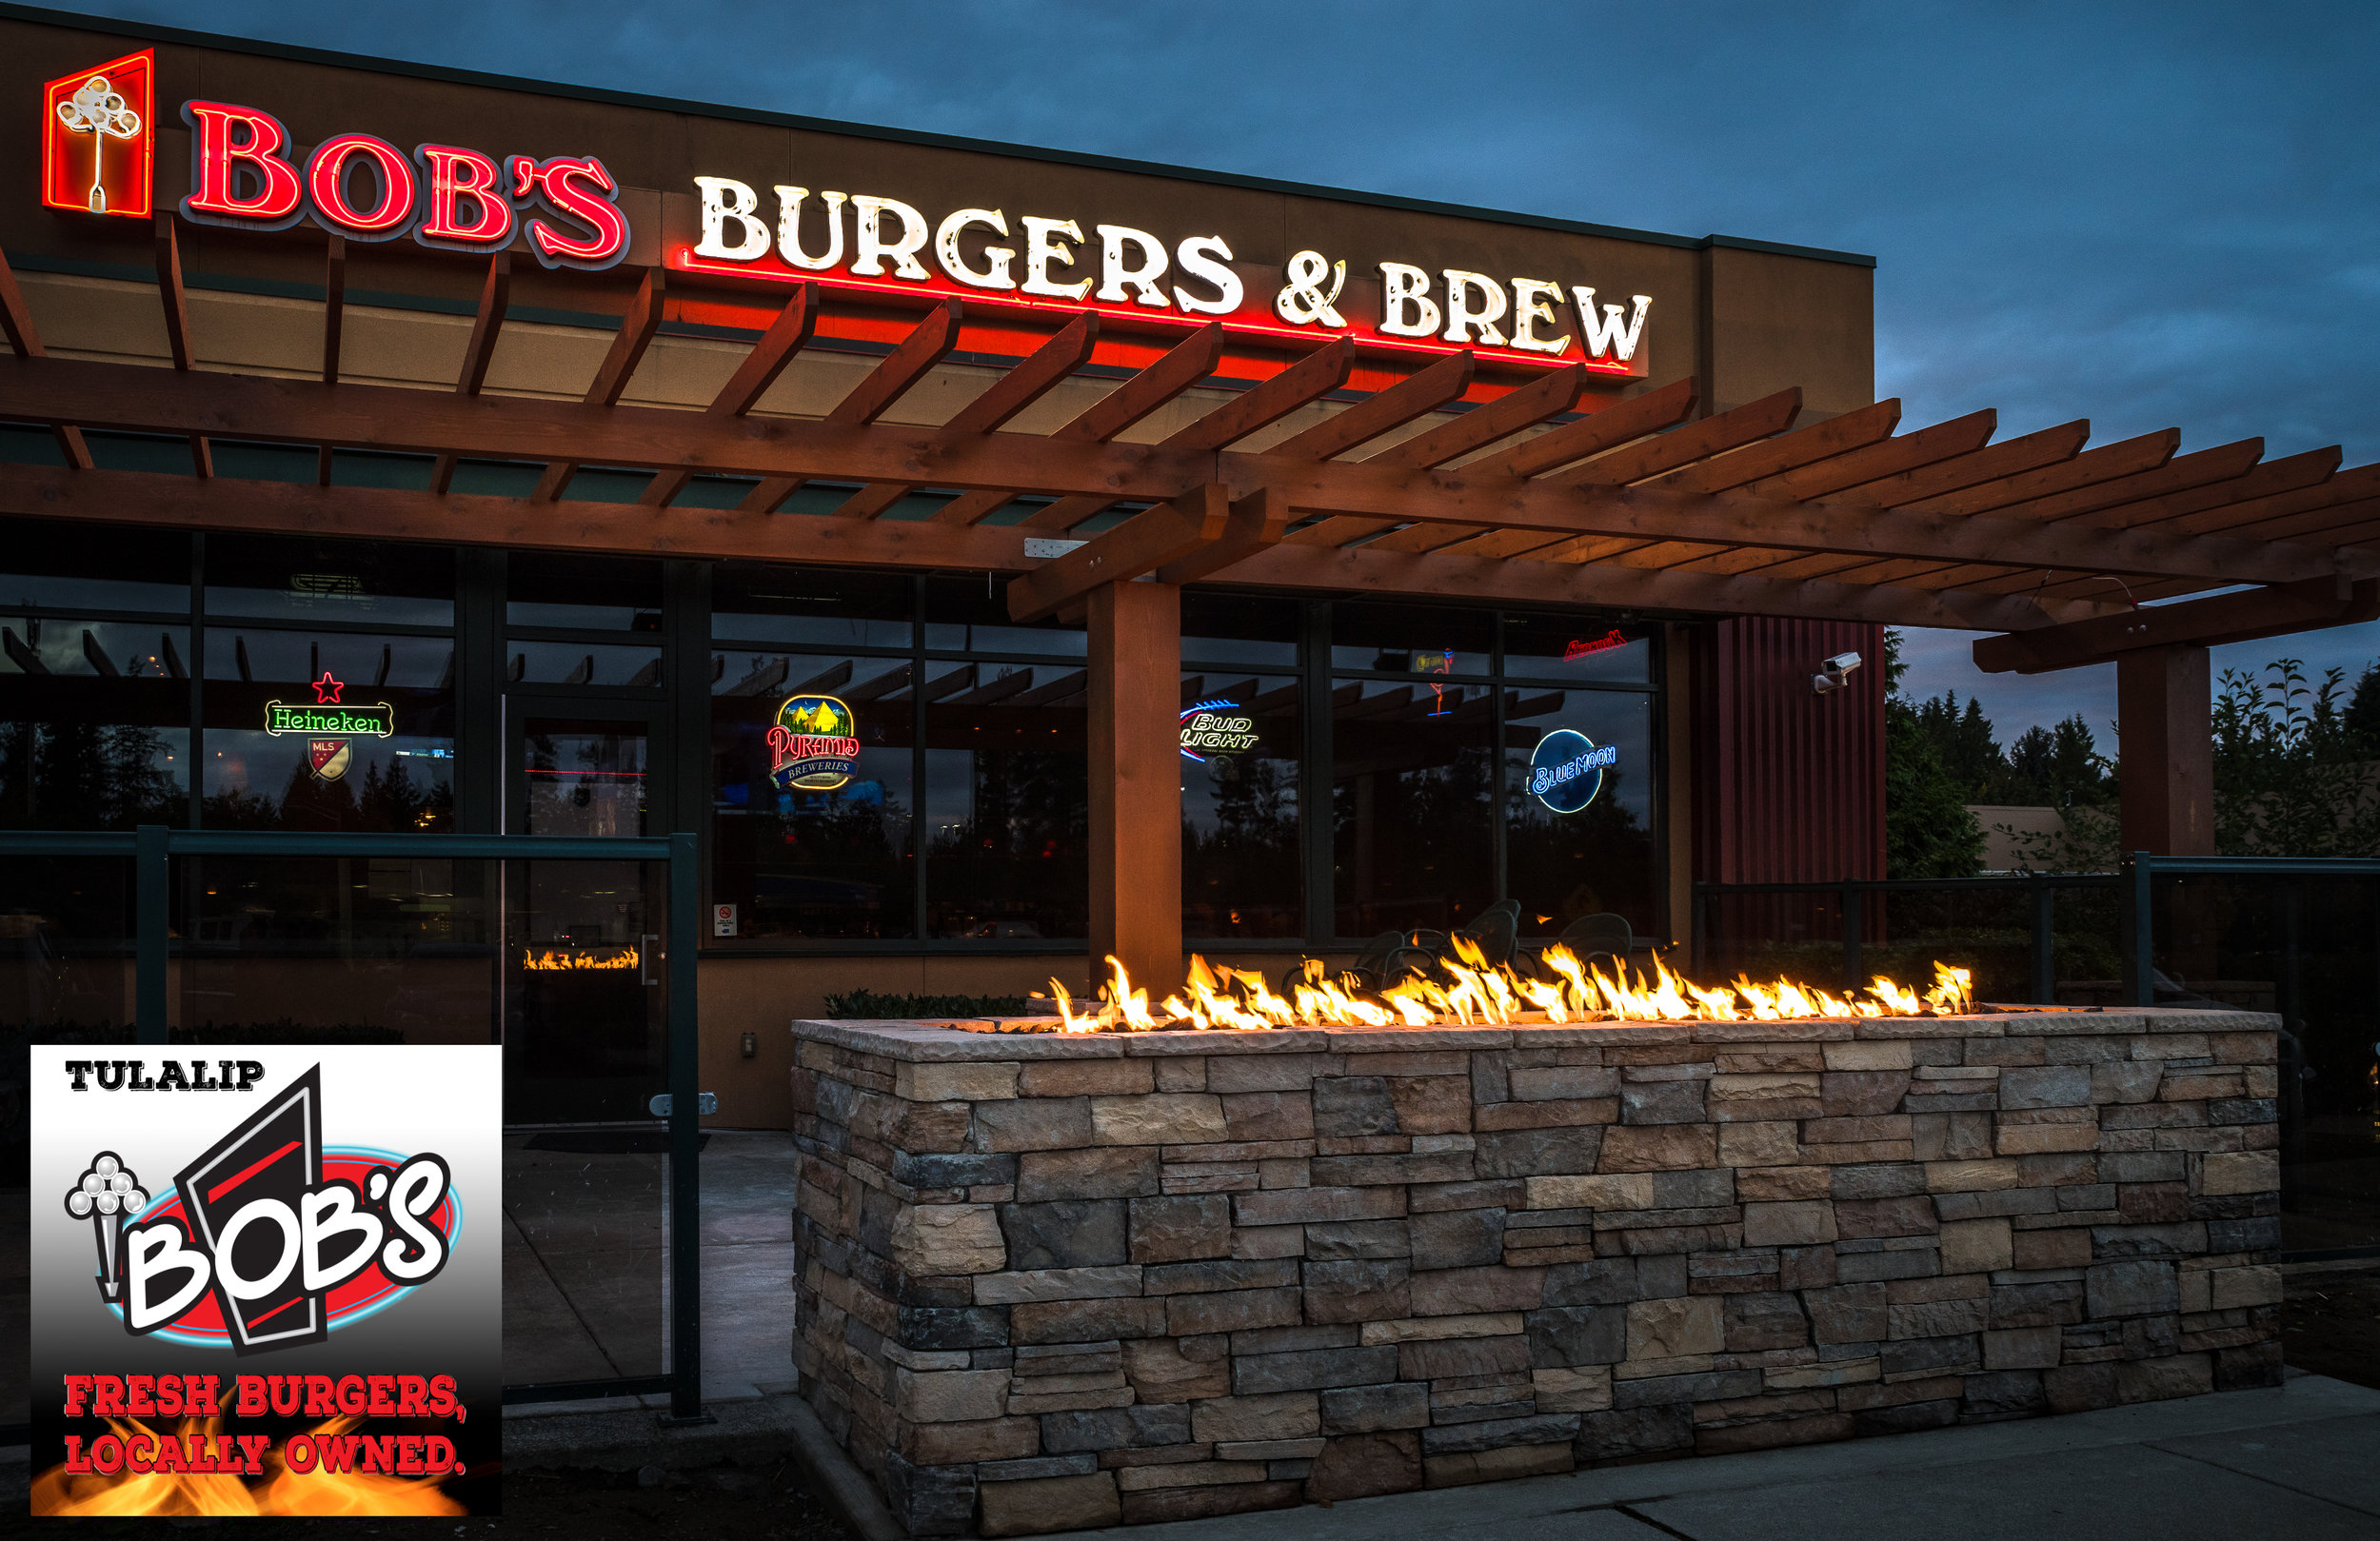 After months of planning, approvals and construction, our new flame deck is fired up and ready! Located on our Lounge side, expect to enjoy it when weather permits!